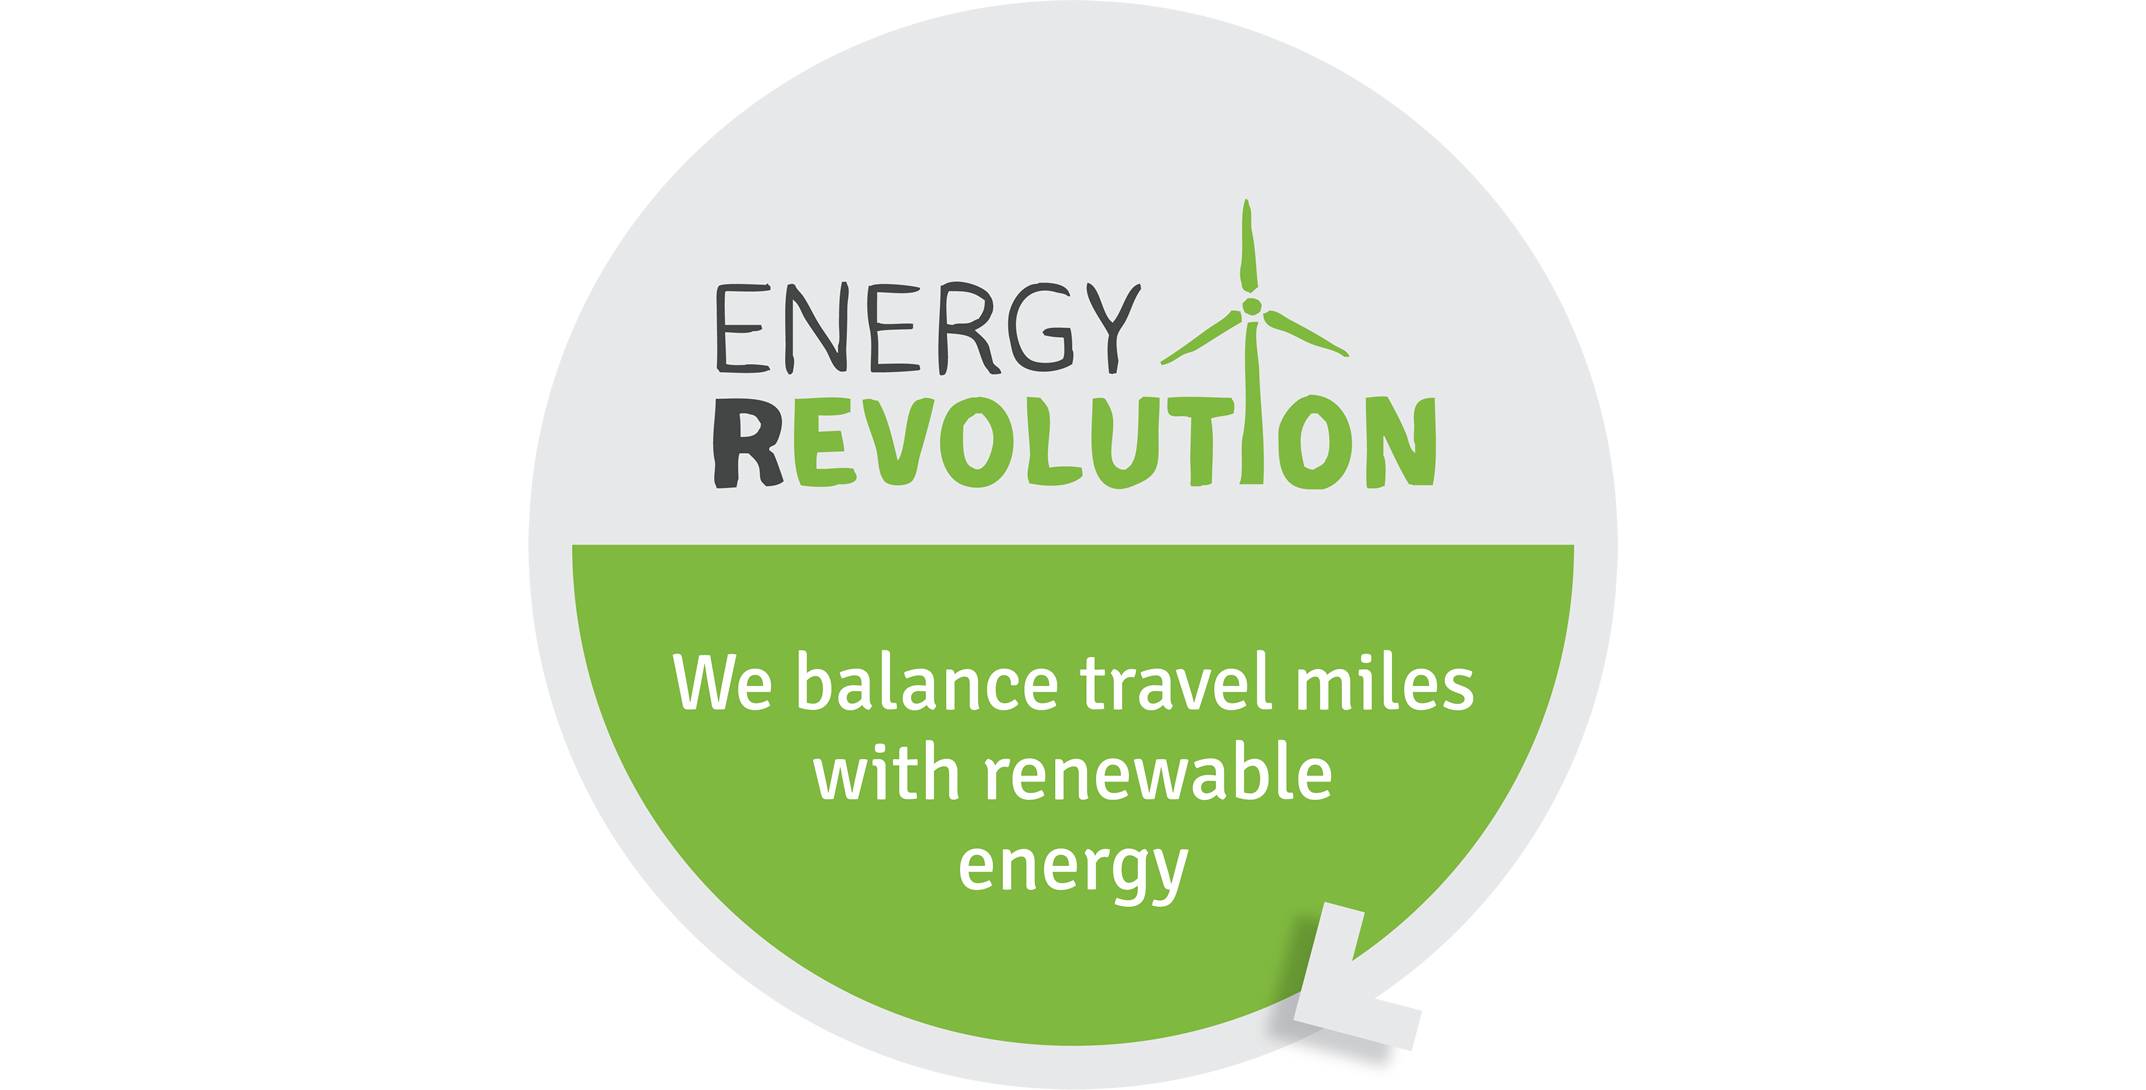 Energy Revolution - We balance travel miles with renewable energy